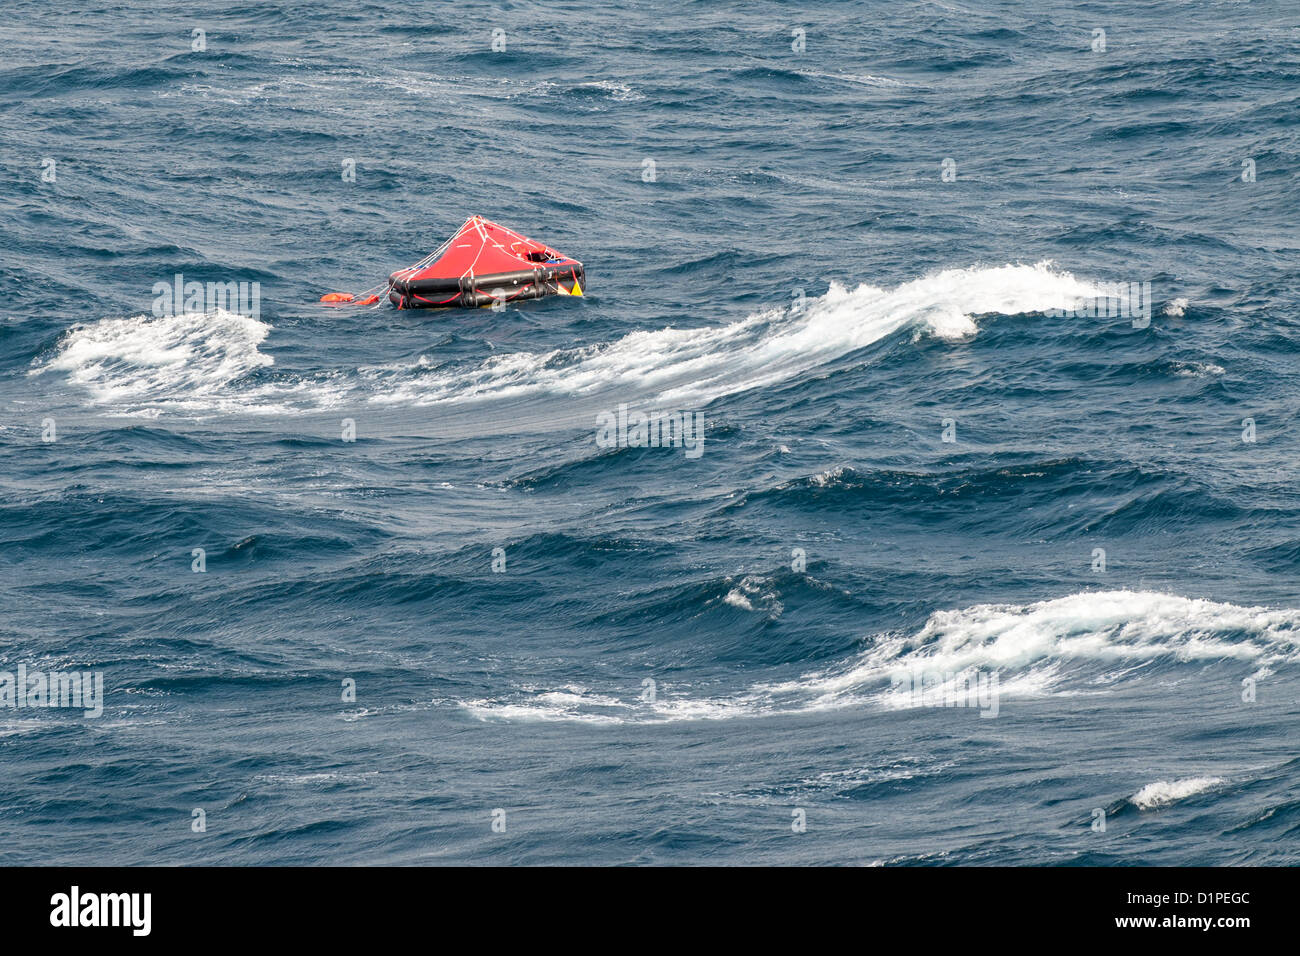 Inflatable Lifeboat, inflated Life Raft in the rough sea - Stock Image